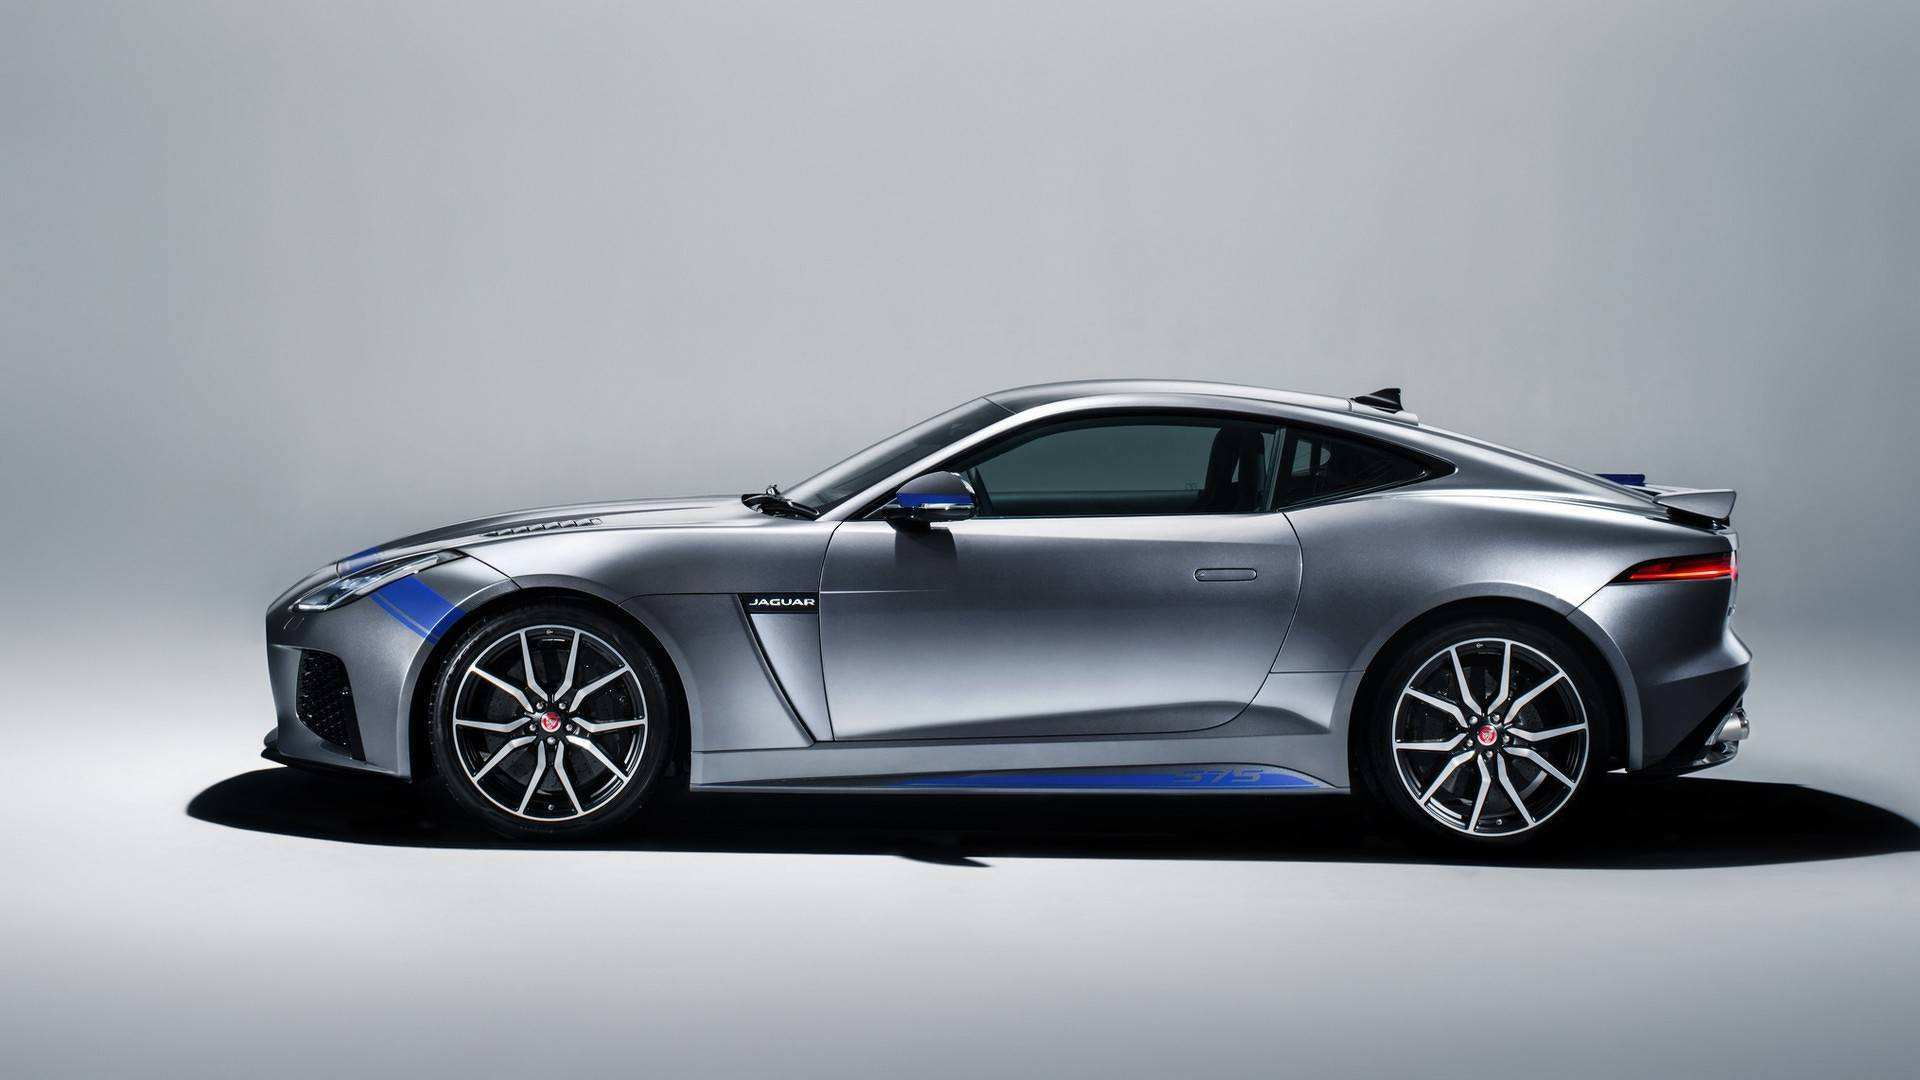 65 The 2020 Jaguar F Type New Concept Exterior and Interior by 2020 Jaguar F Type New Concept